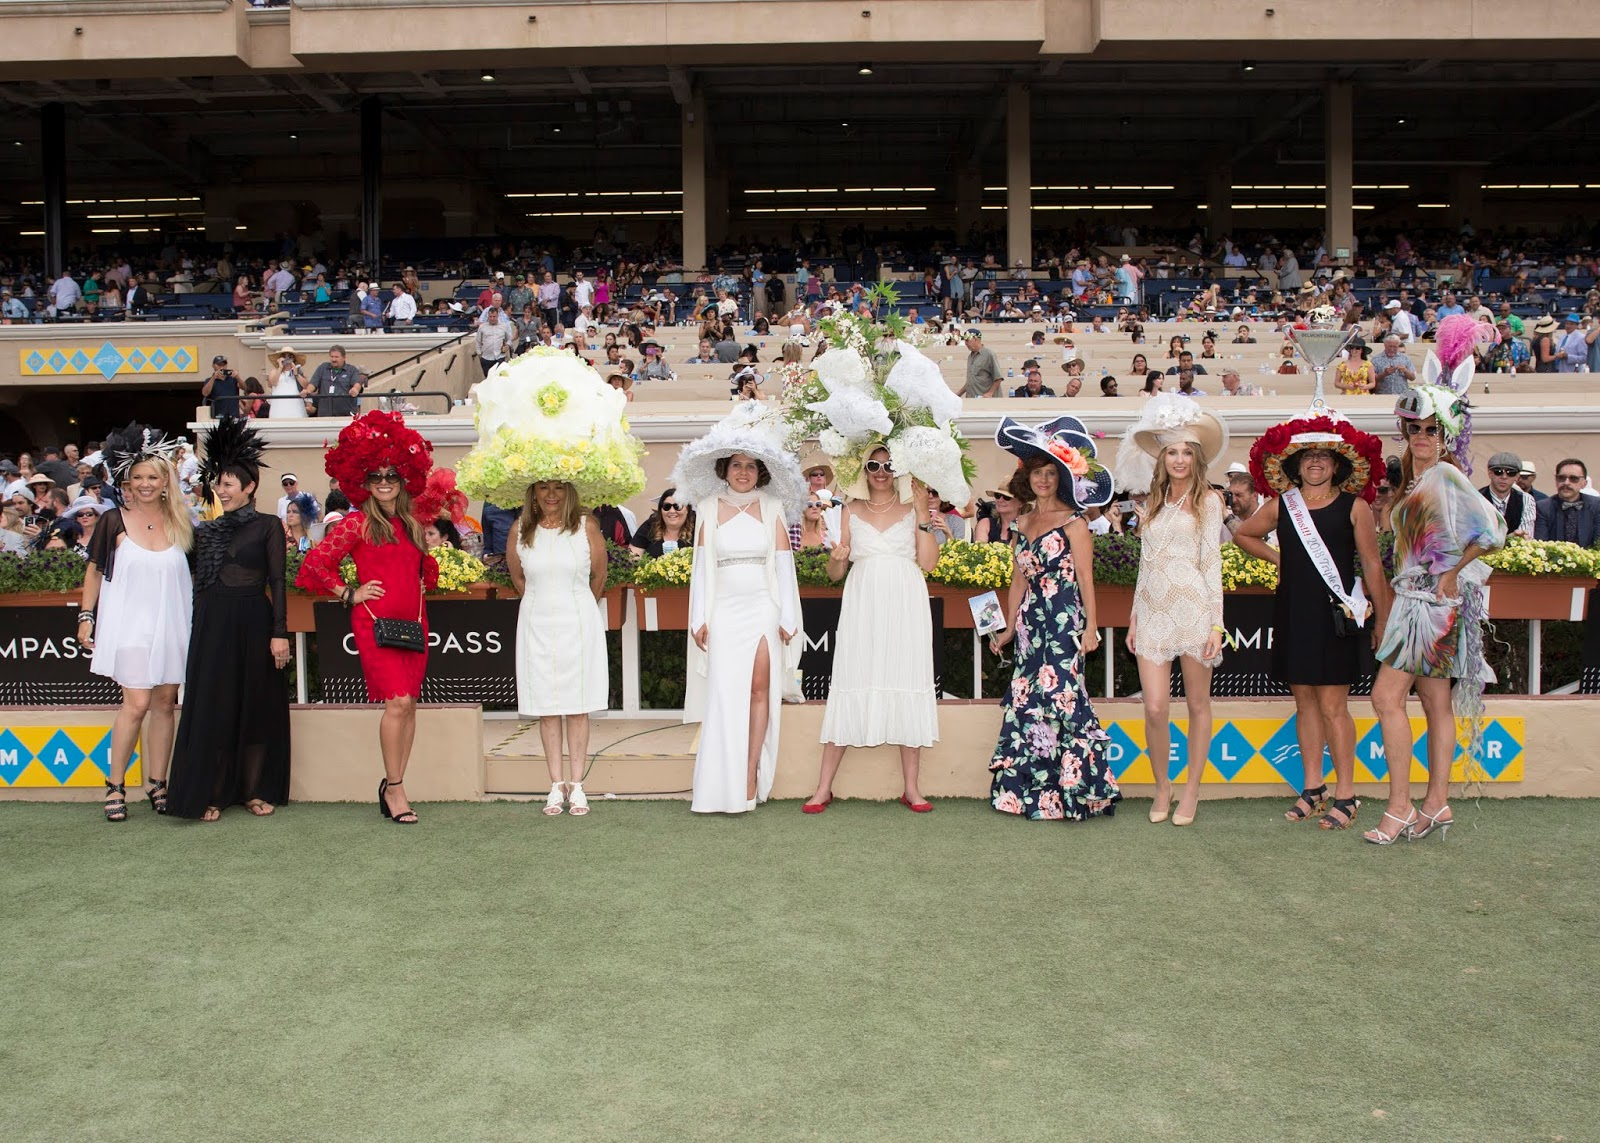 del mar opening day hat contest 2018, del mar opening day hat contest 2018 finalists